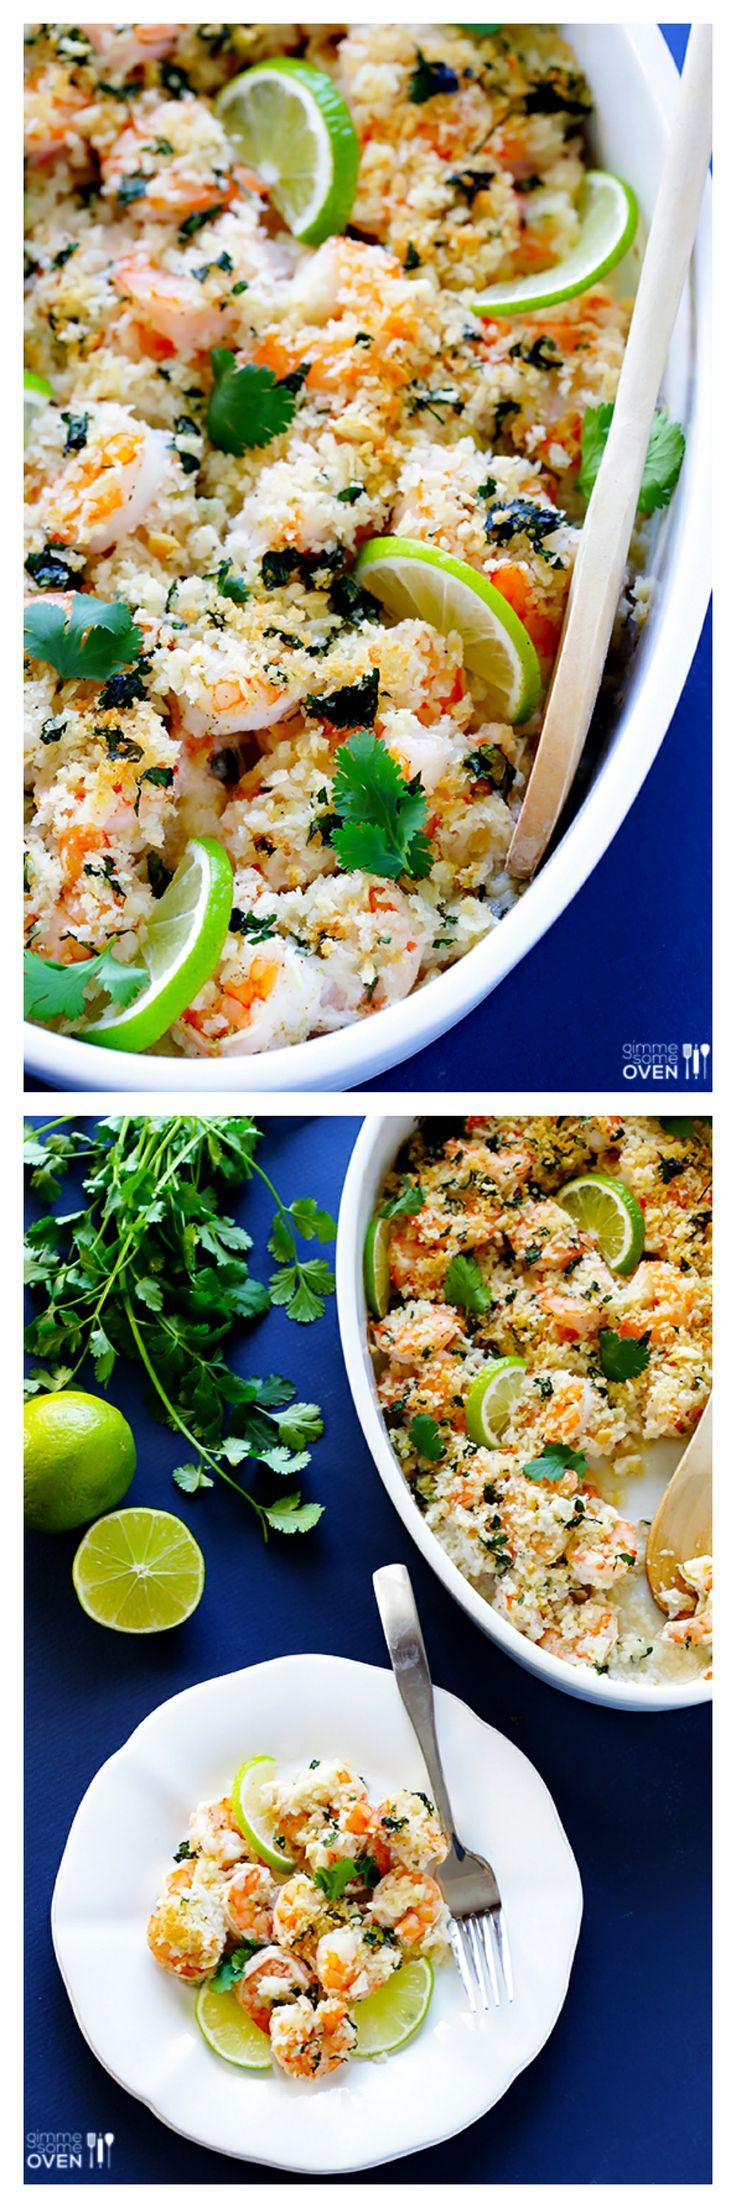 Cilantro Lime Baked Shrimp -- easy, healthier, delicious, and ready to go in 30 minutes! gimmesomeoven.com